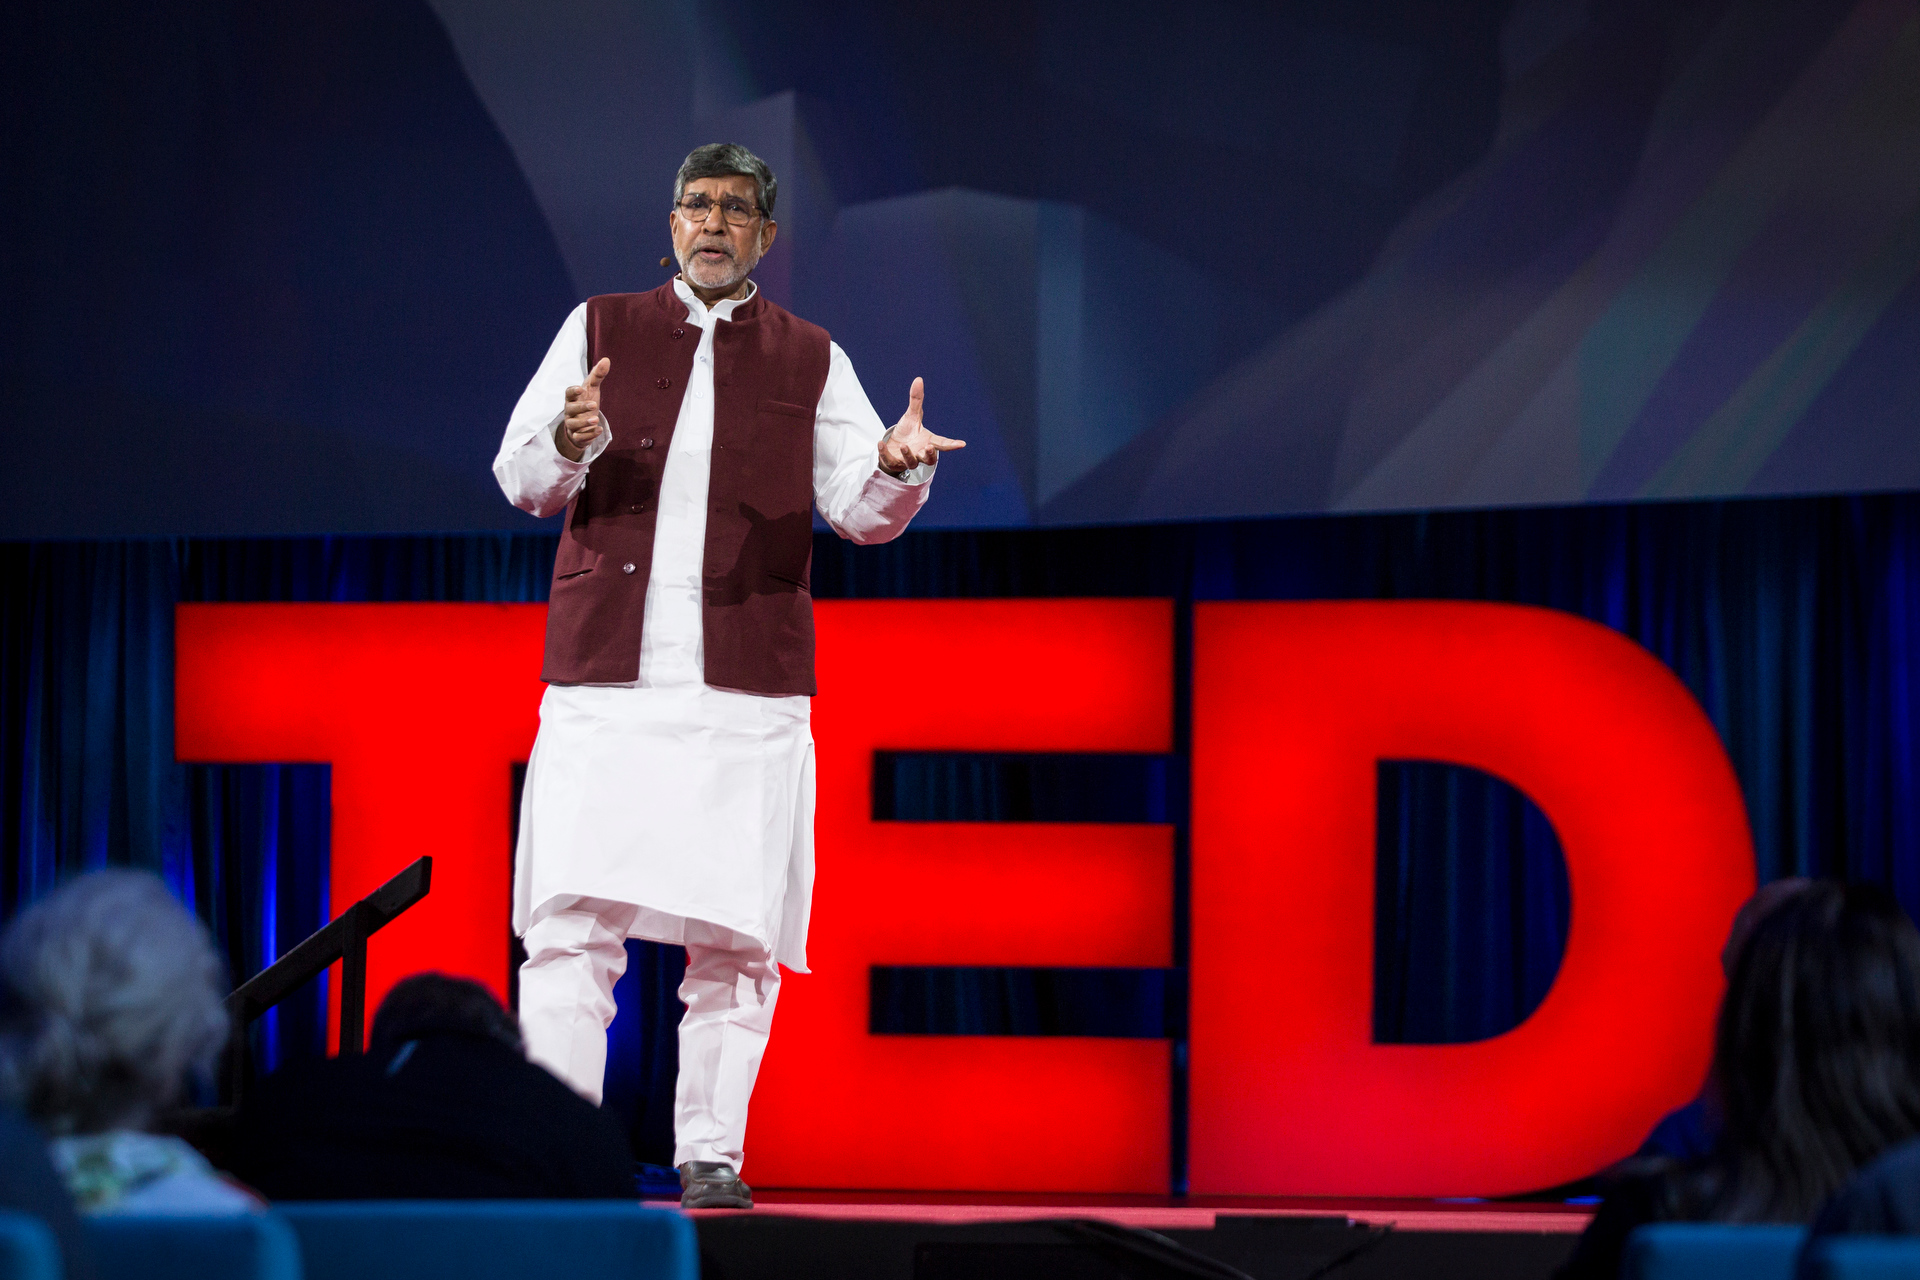 Kailash Satyarthi speaks at TED2015 - Truth and Dare, Session 12. Photo: Bret Hartman/TED